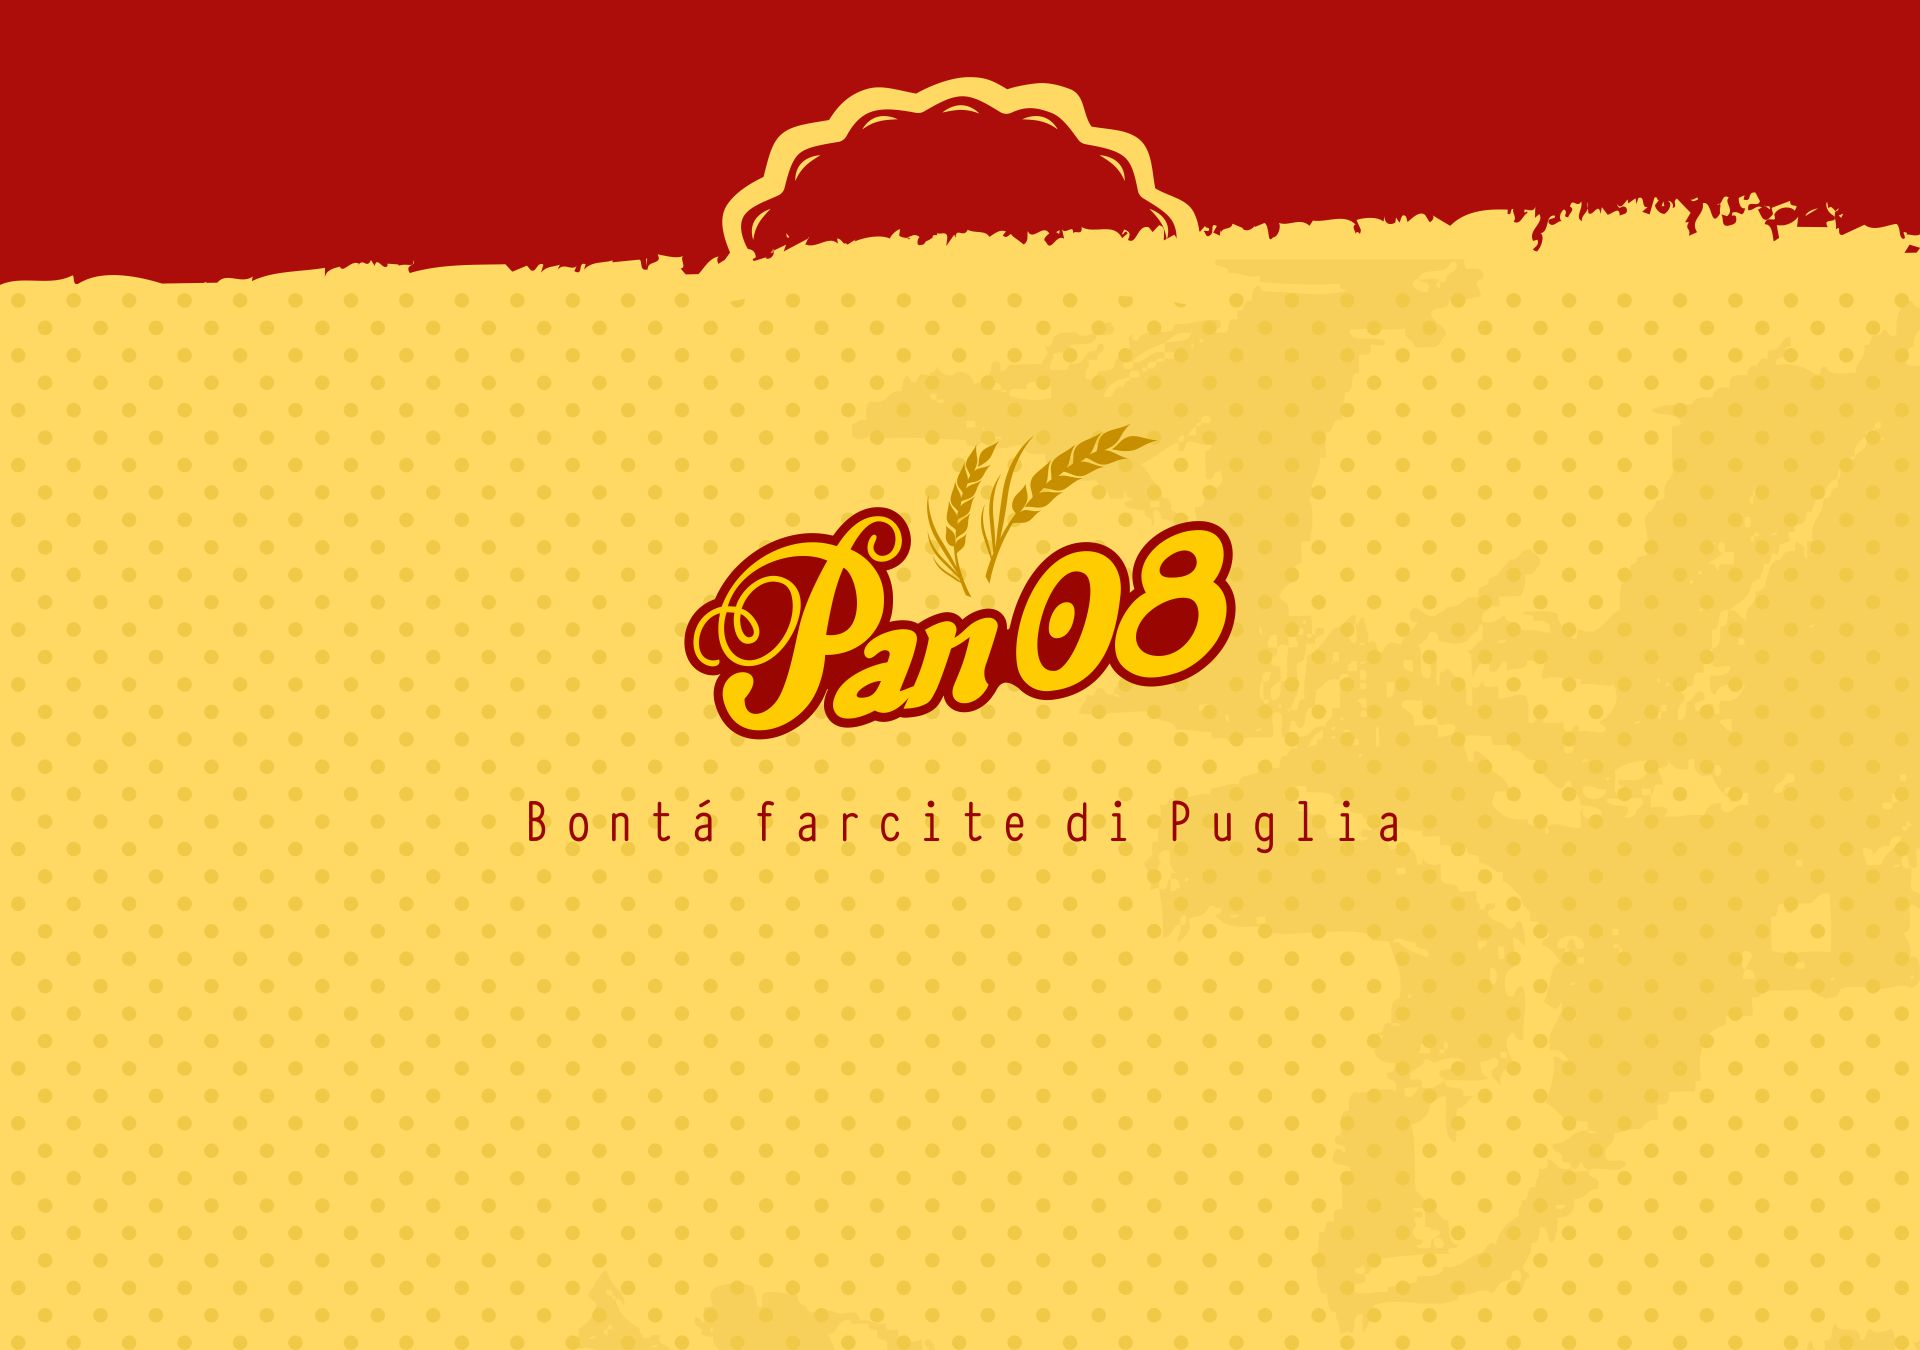 pan08 visual